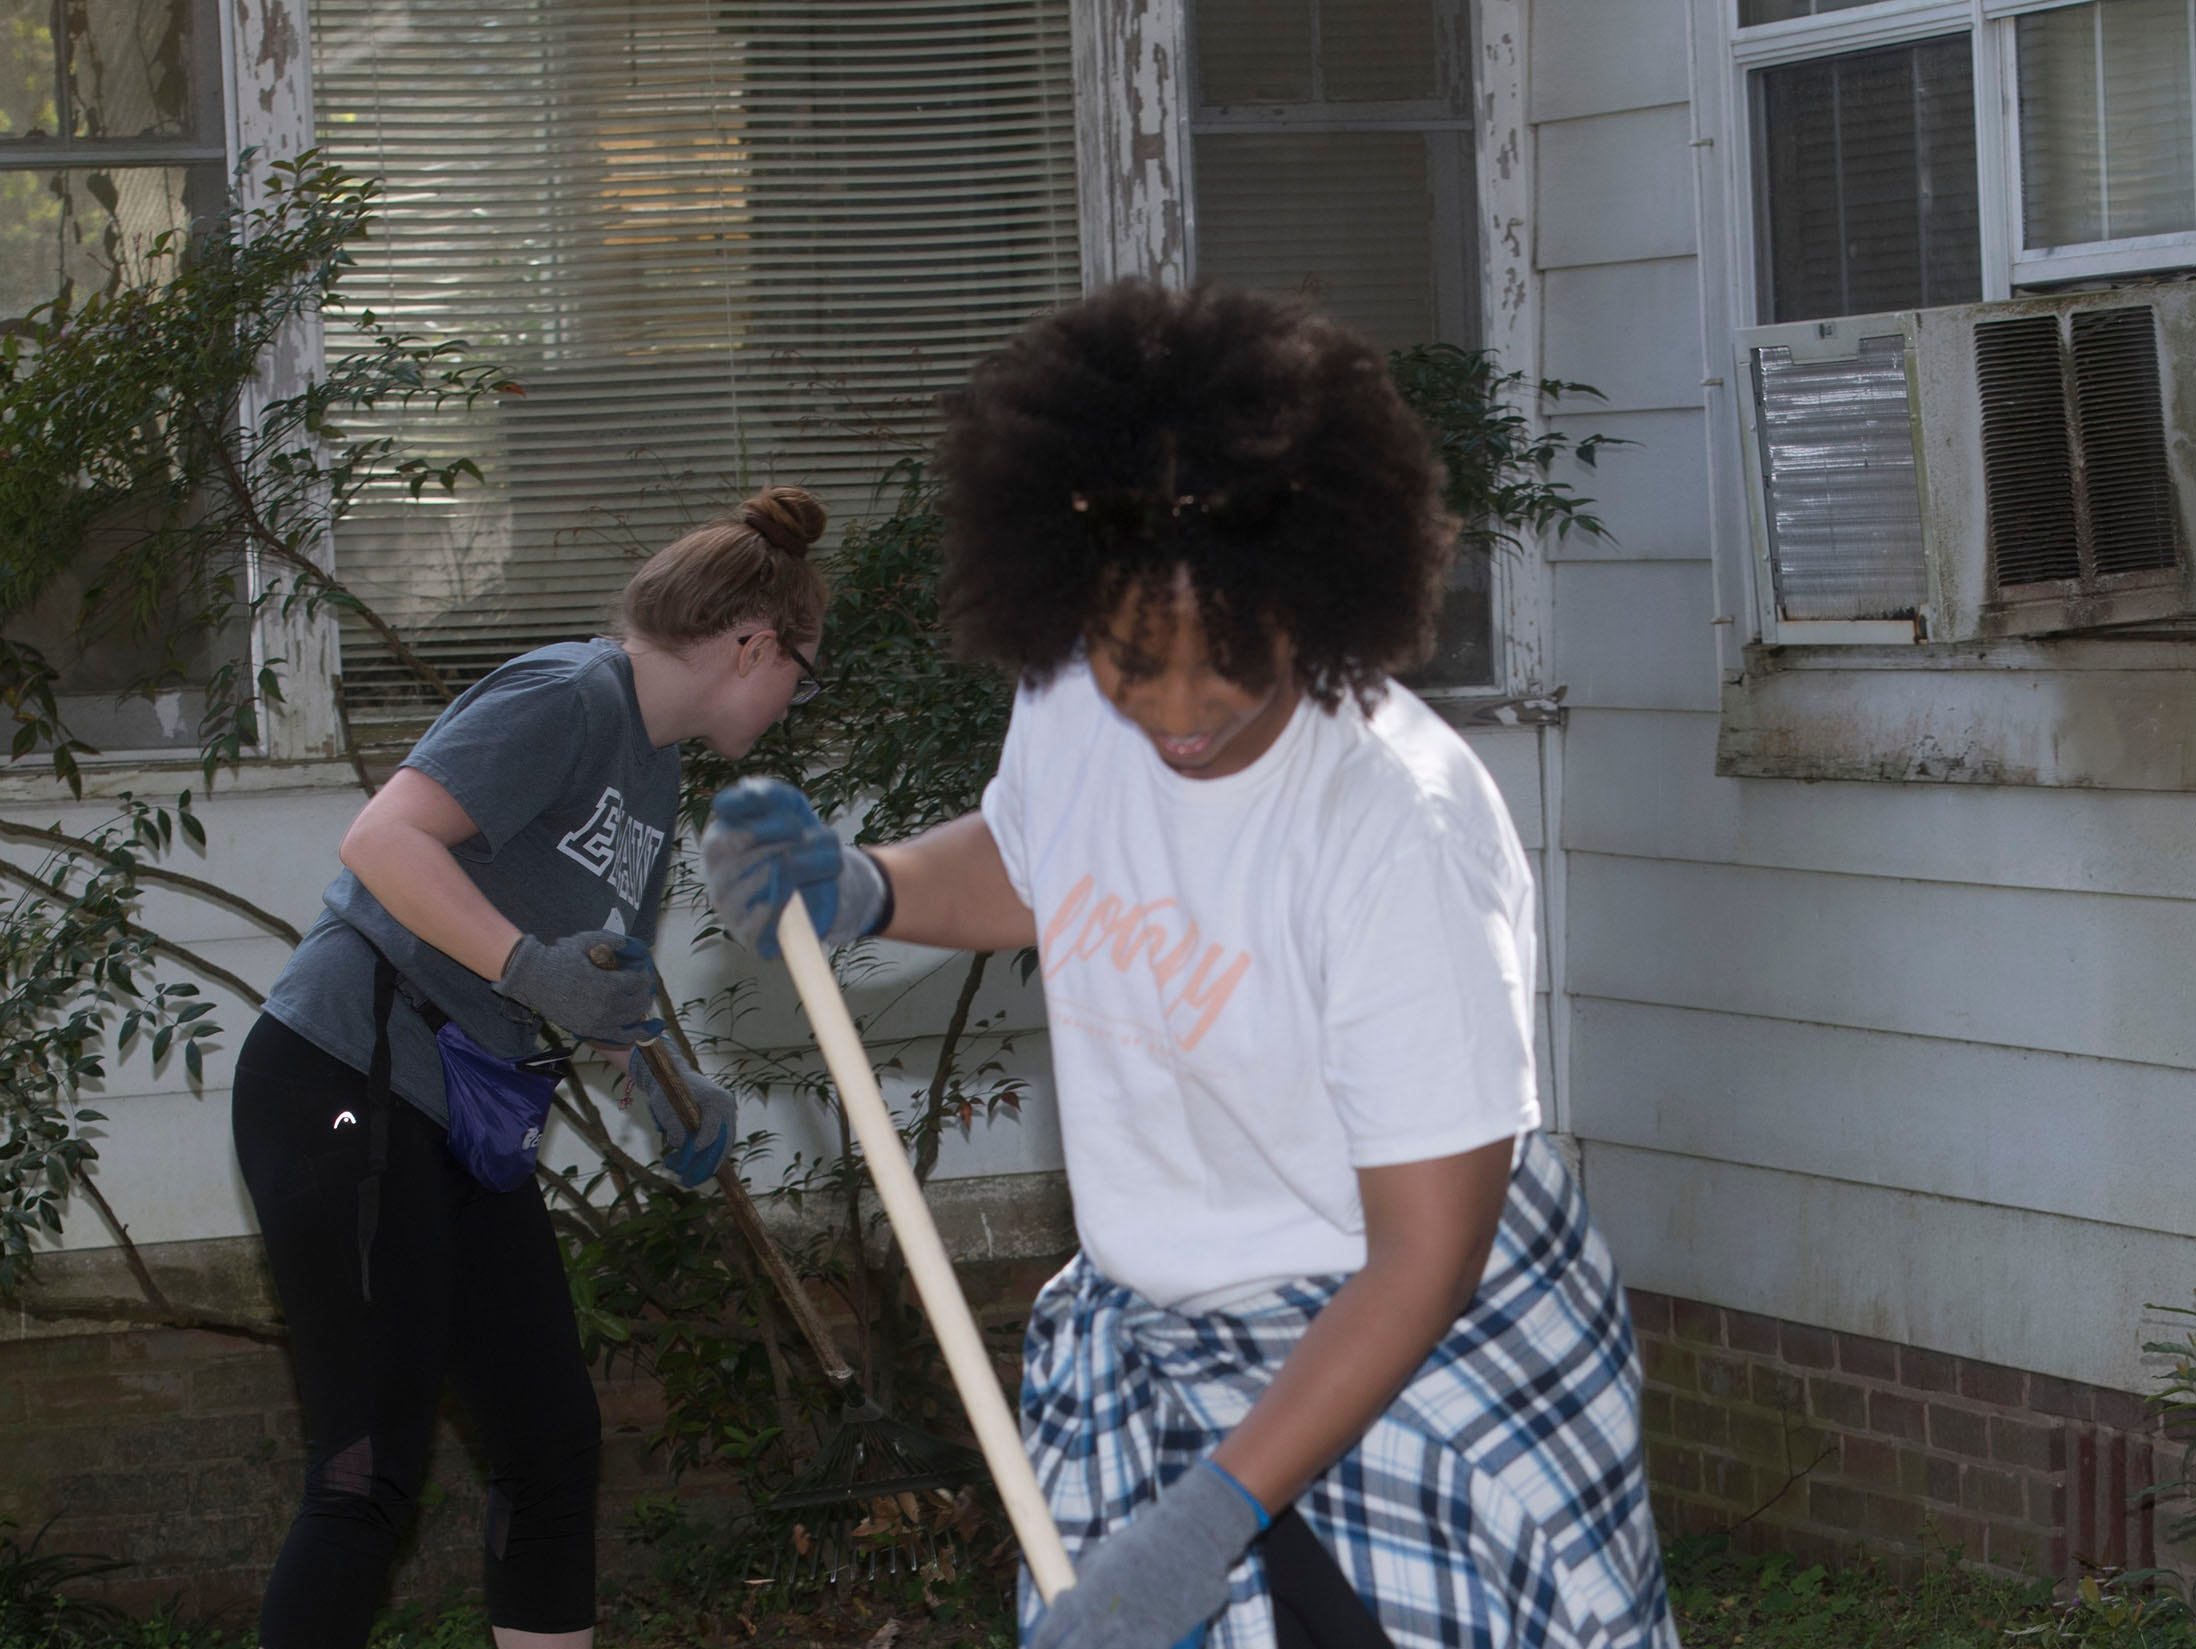 Volunteers from the organization, Call to Greatness, joins with Habitat for Humanity of Pensacola, Keep Pensacola Beautiful, the City of Pensacola and Escambia County to help revitalize the Brownsville area during the inaugural Rock the Block event on Tuesday, March 12, 2019.